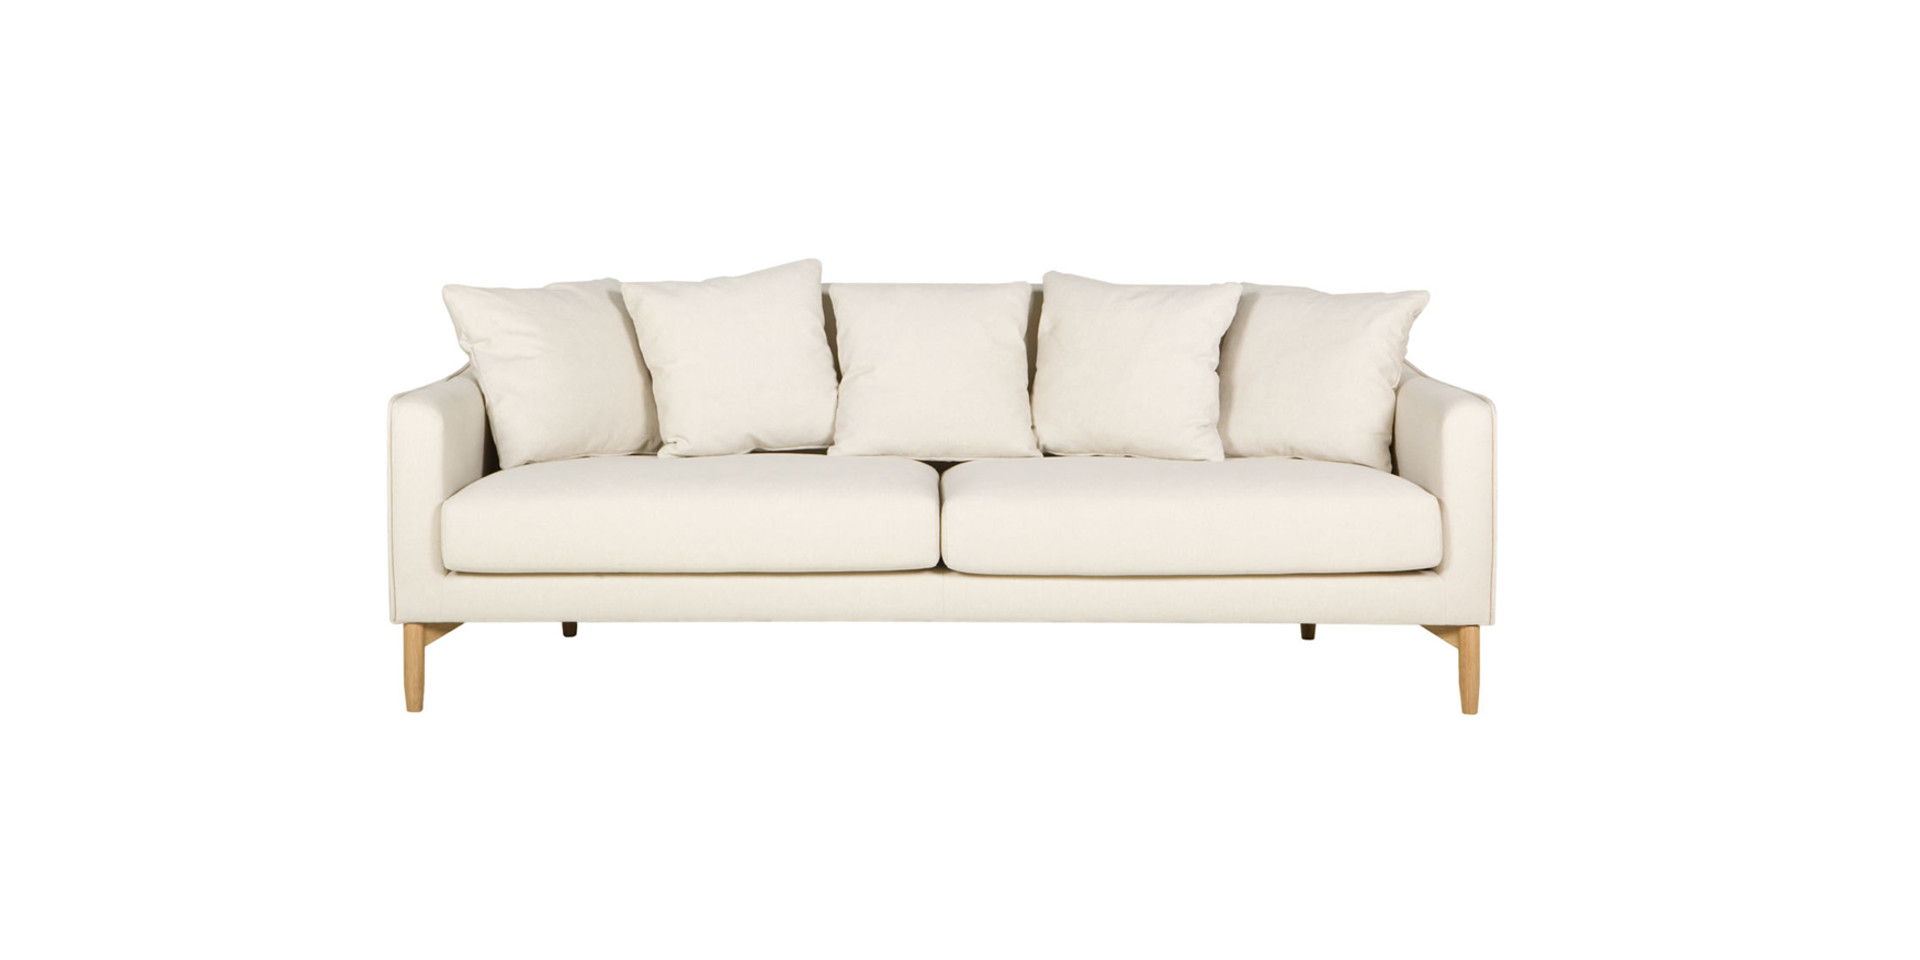 sits-ivy-canape-3seater_brest67_natur_1